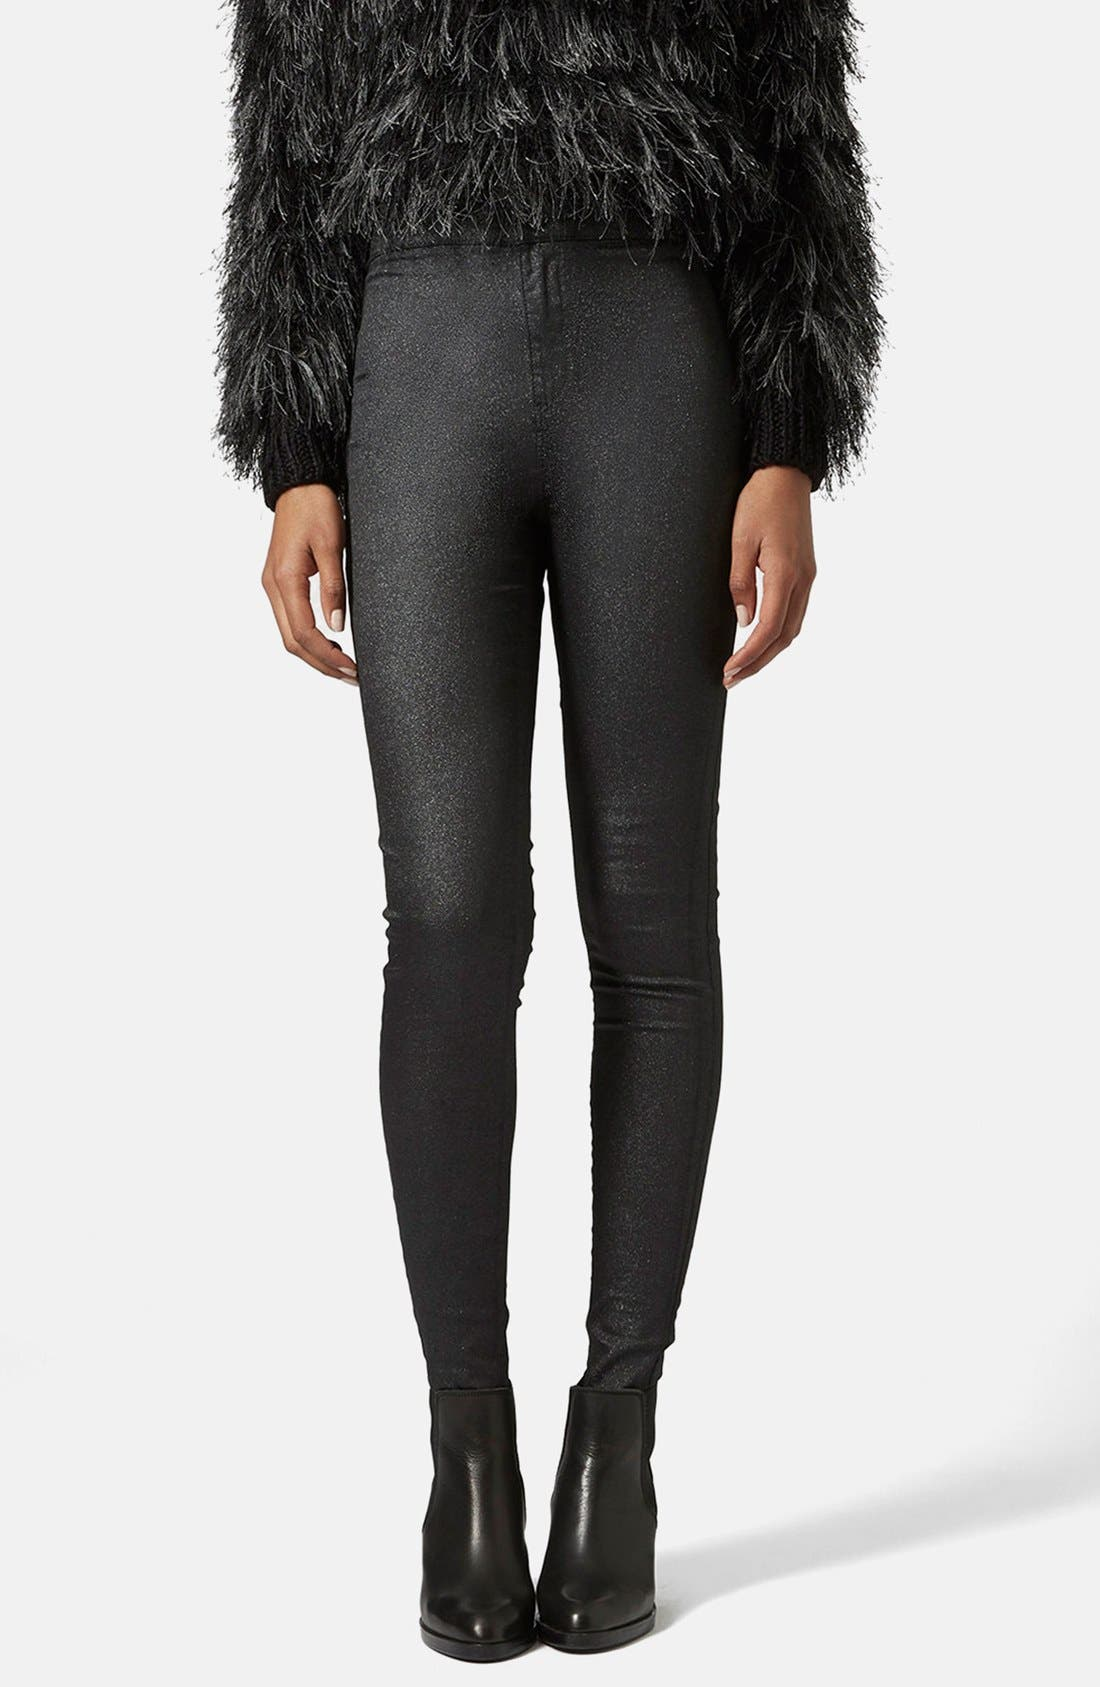 Main Image - Topshop Moto 'Joni' Glitter Skinny Jeans (Black) (Regular, Short & Long)